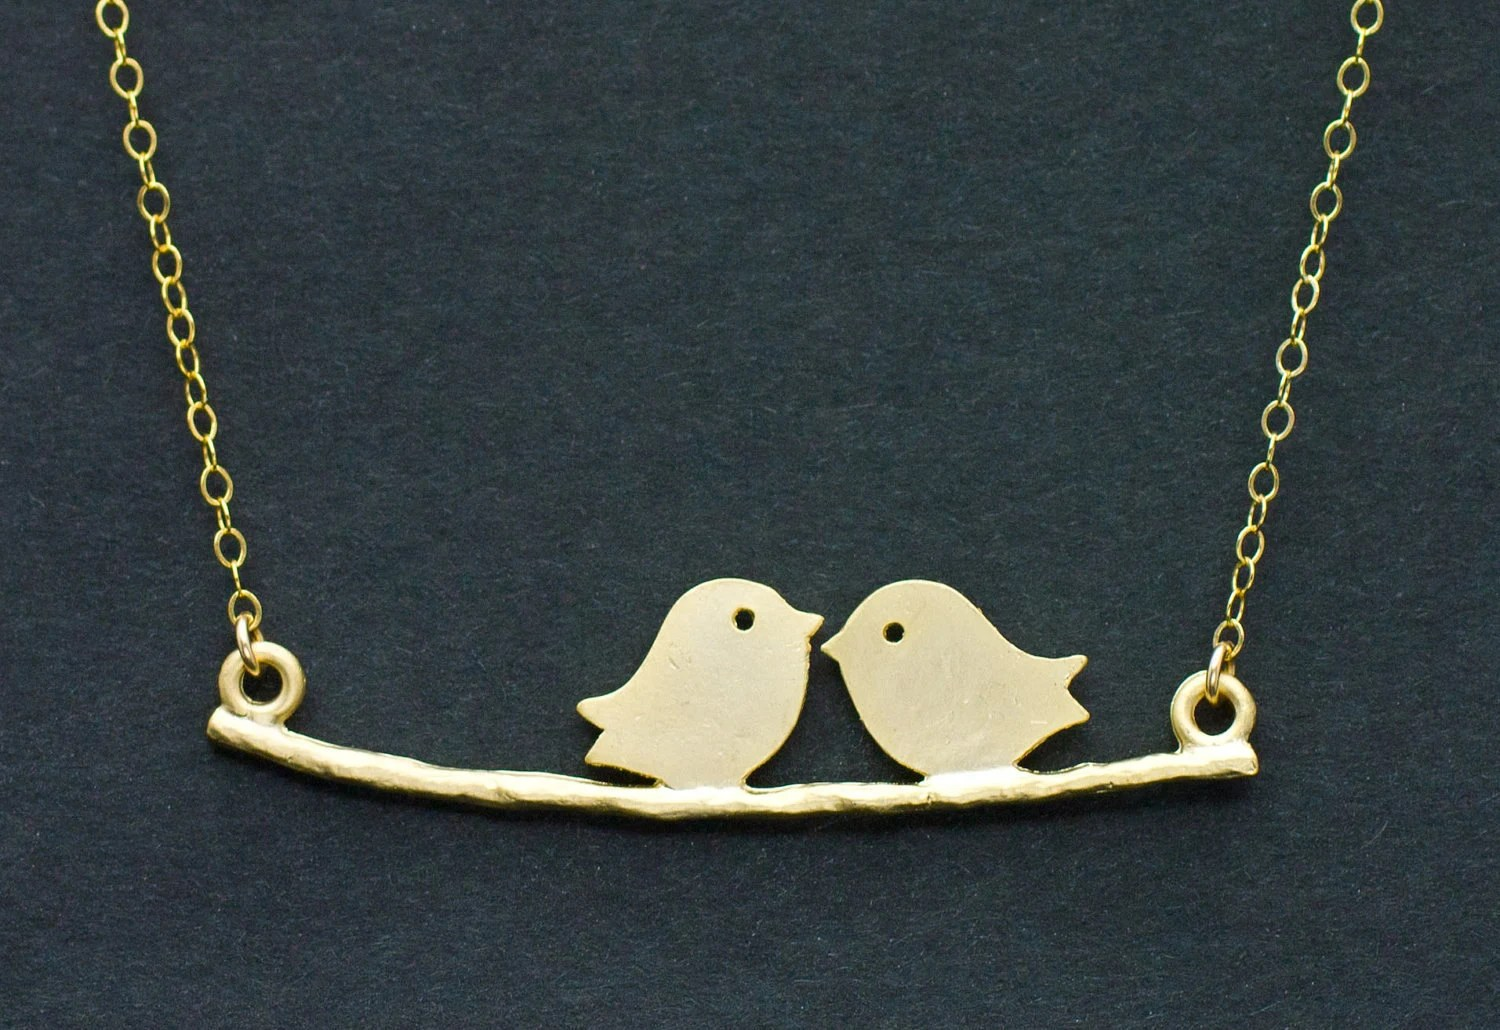 SALE - Love Birds on Branch Necklace - 14k GOLD Filled - anniversary gift, mom, daughter, sister gift, cute gift